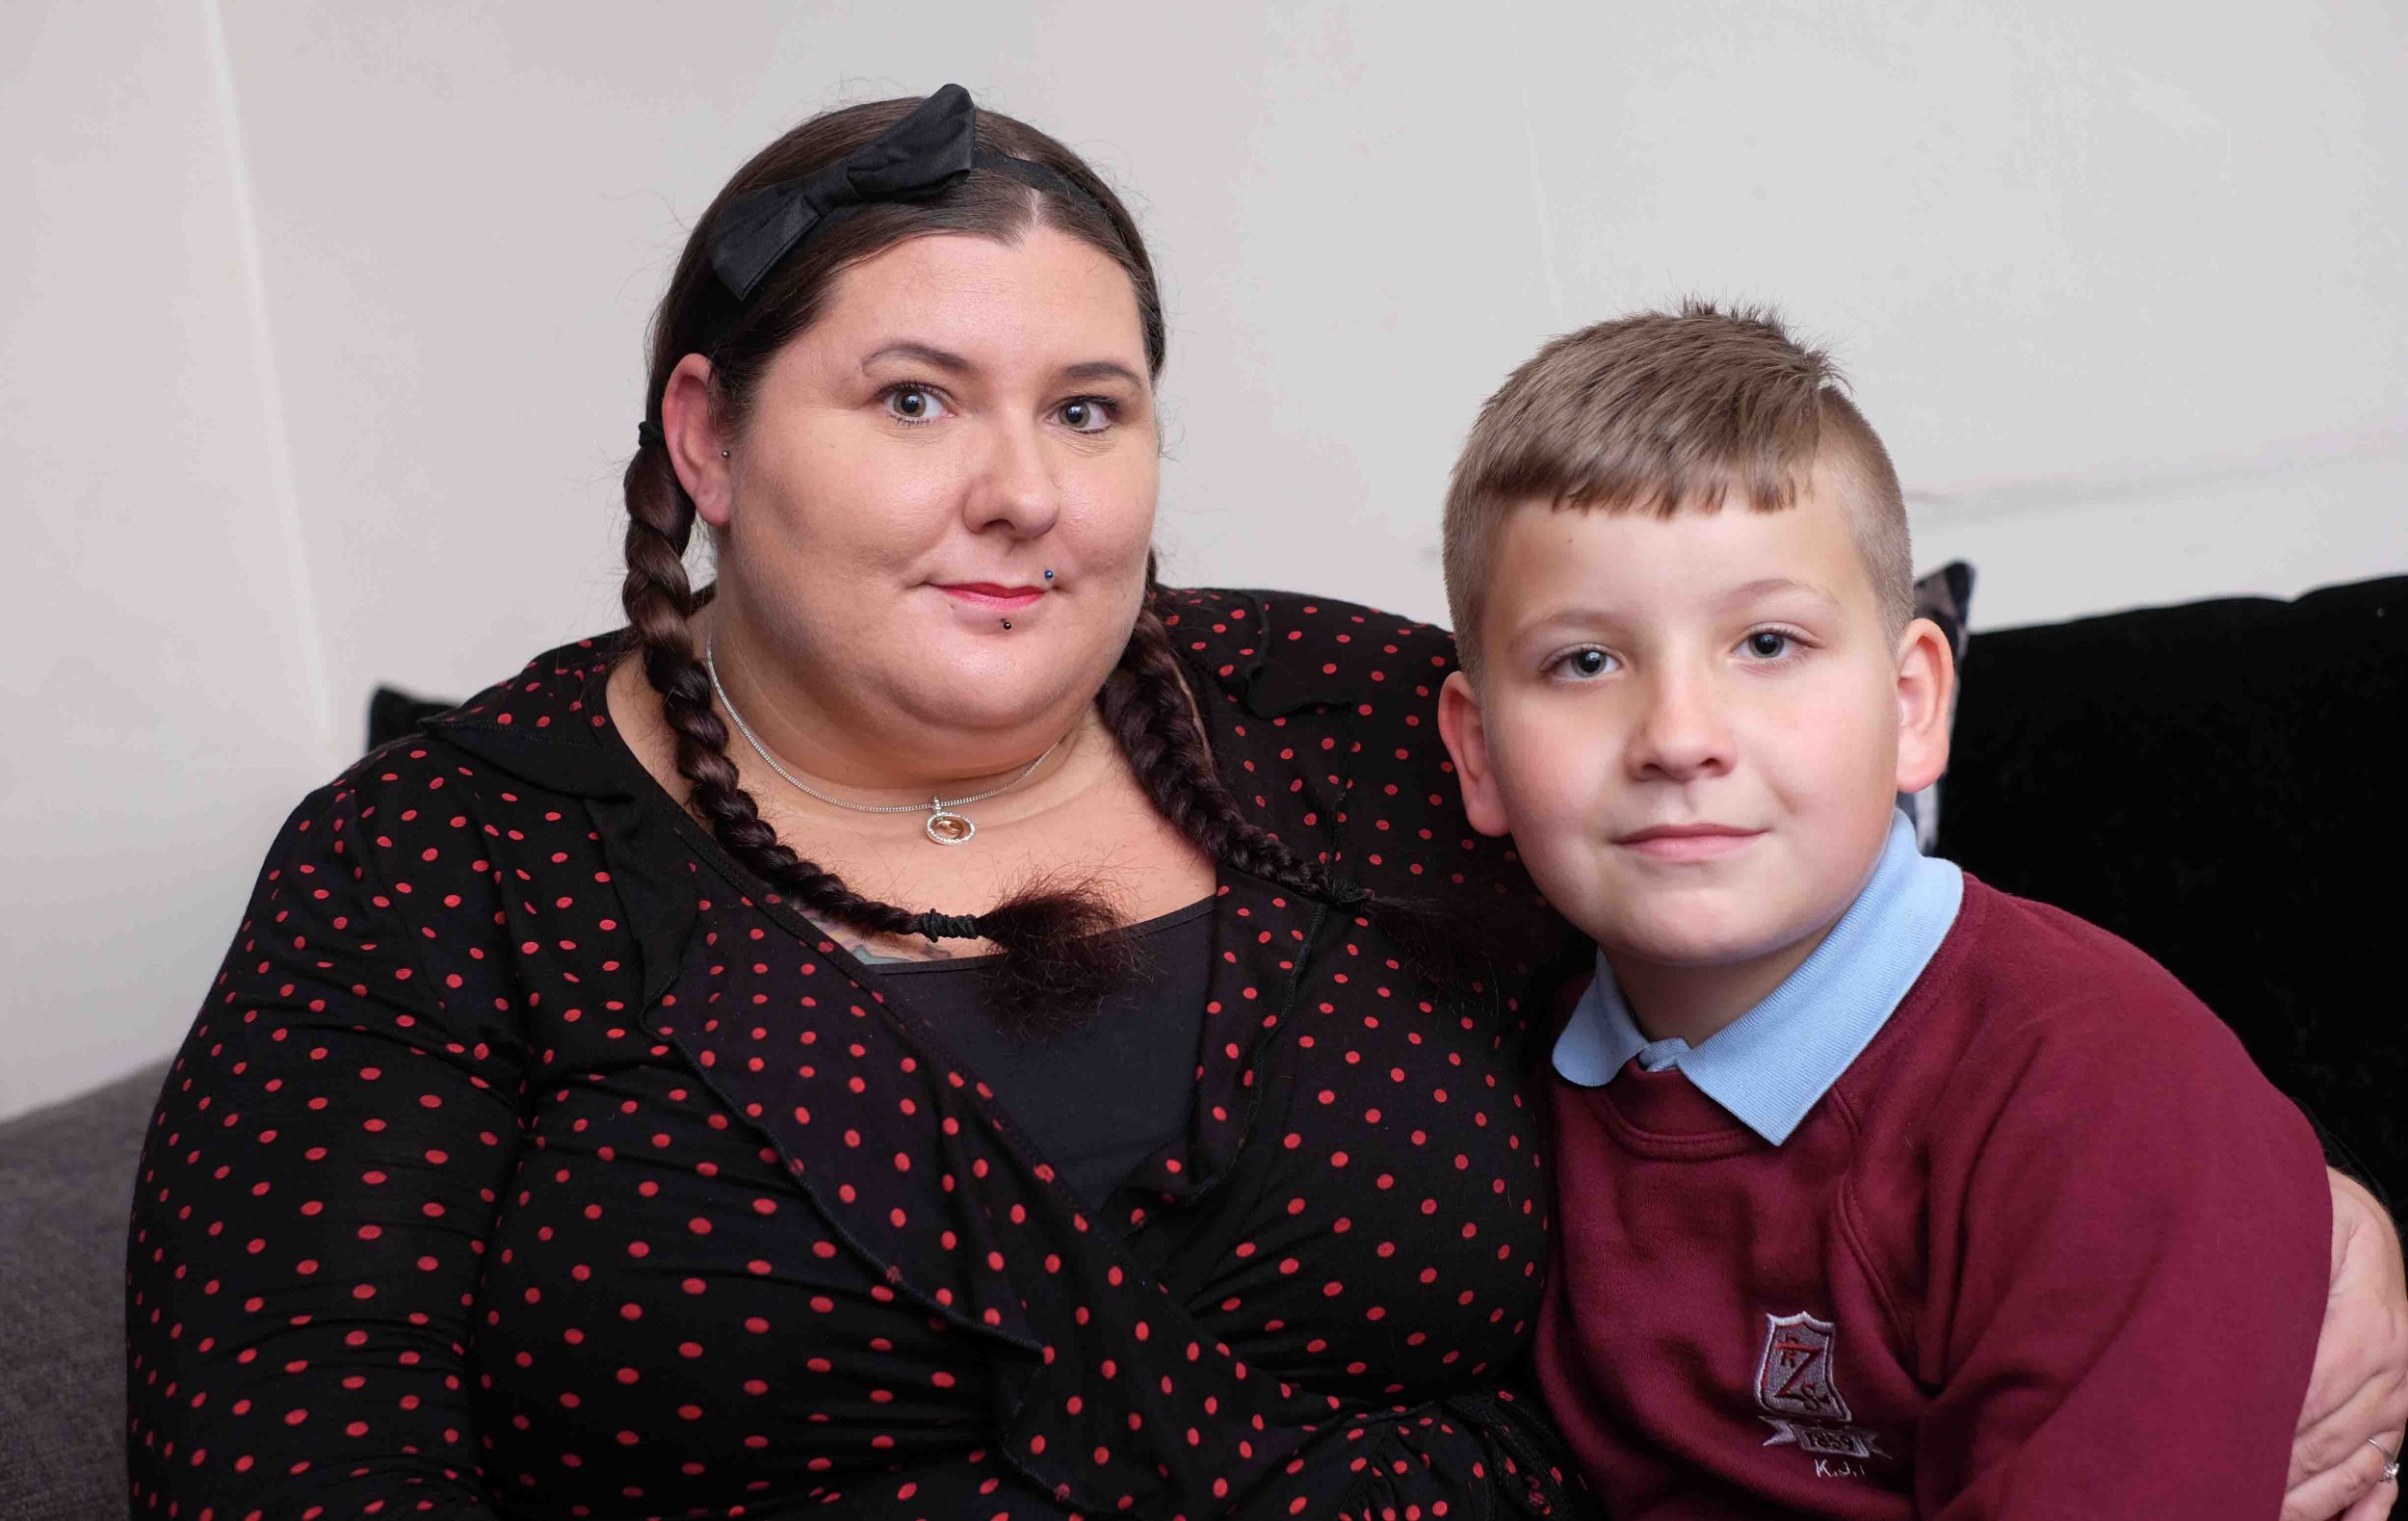 A mum has hit out at her son's primary after being hit with a fine of up to ?240 - as she claims he only missed half a day of school. Sabrina Thompson said her family was returning home from a holiday at Flamingo Land - and had informed Zetland Primary, in Redcar, that eight-year-old son Kai would miss the morning session. Kai also missed the afternoon session on the first day of term on September 4, as he had a hospital appointment to have splints fitted to his legs. Sabrina and husband Jonathon - who are both disabled - later received fines, dished out for taking Kai on holiday in term time. Sabrina Thompson who was fined for keeping her son Kai , 8 off school for the first day of term in September.